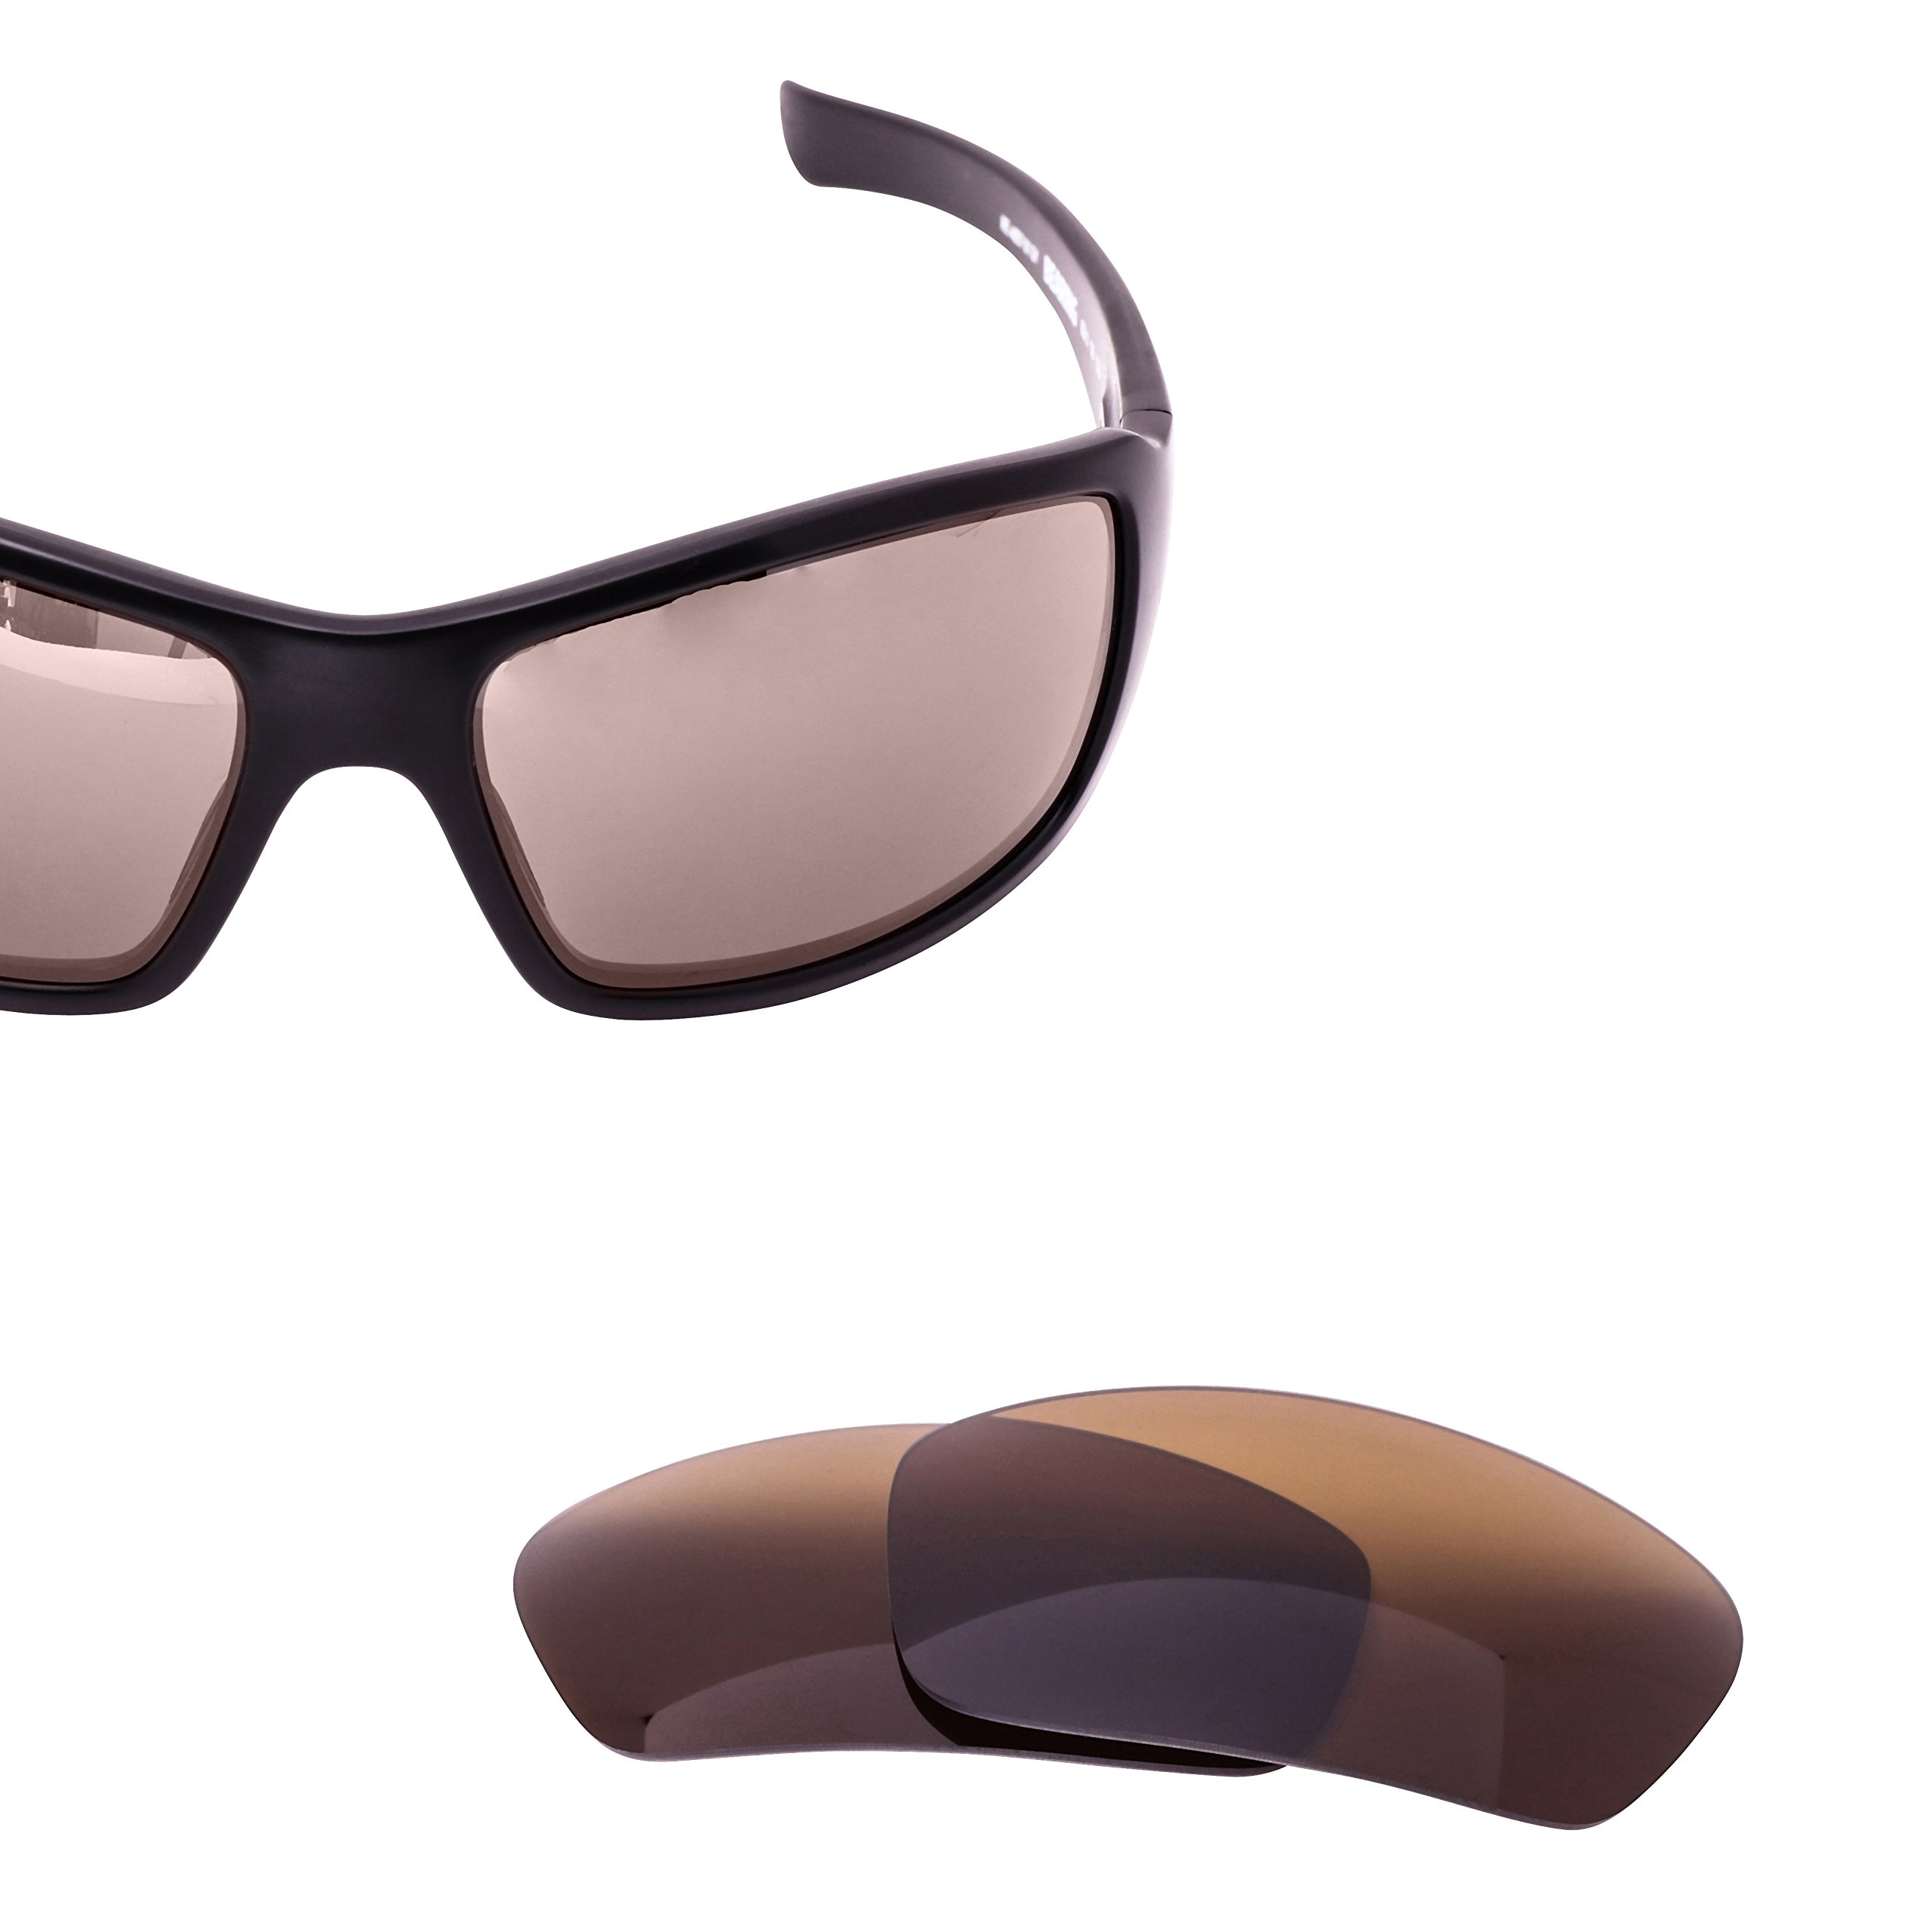 LenzFlip Replacement Lenses for Revo BEARING Sunglass - Brown Polarized Lenses by LenzFlip